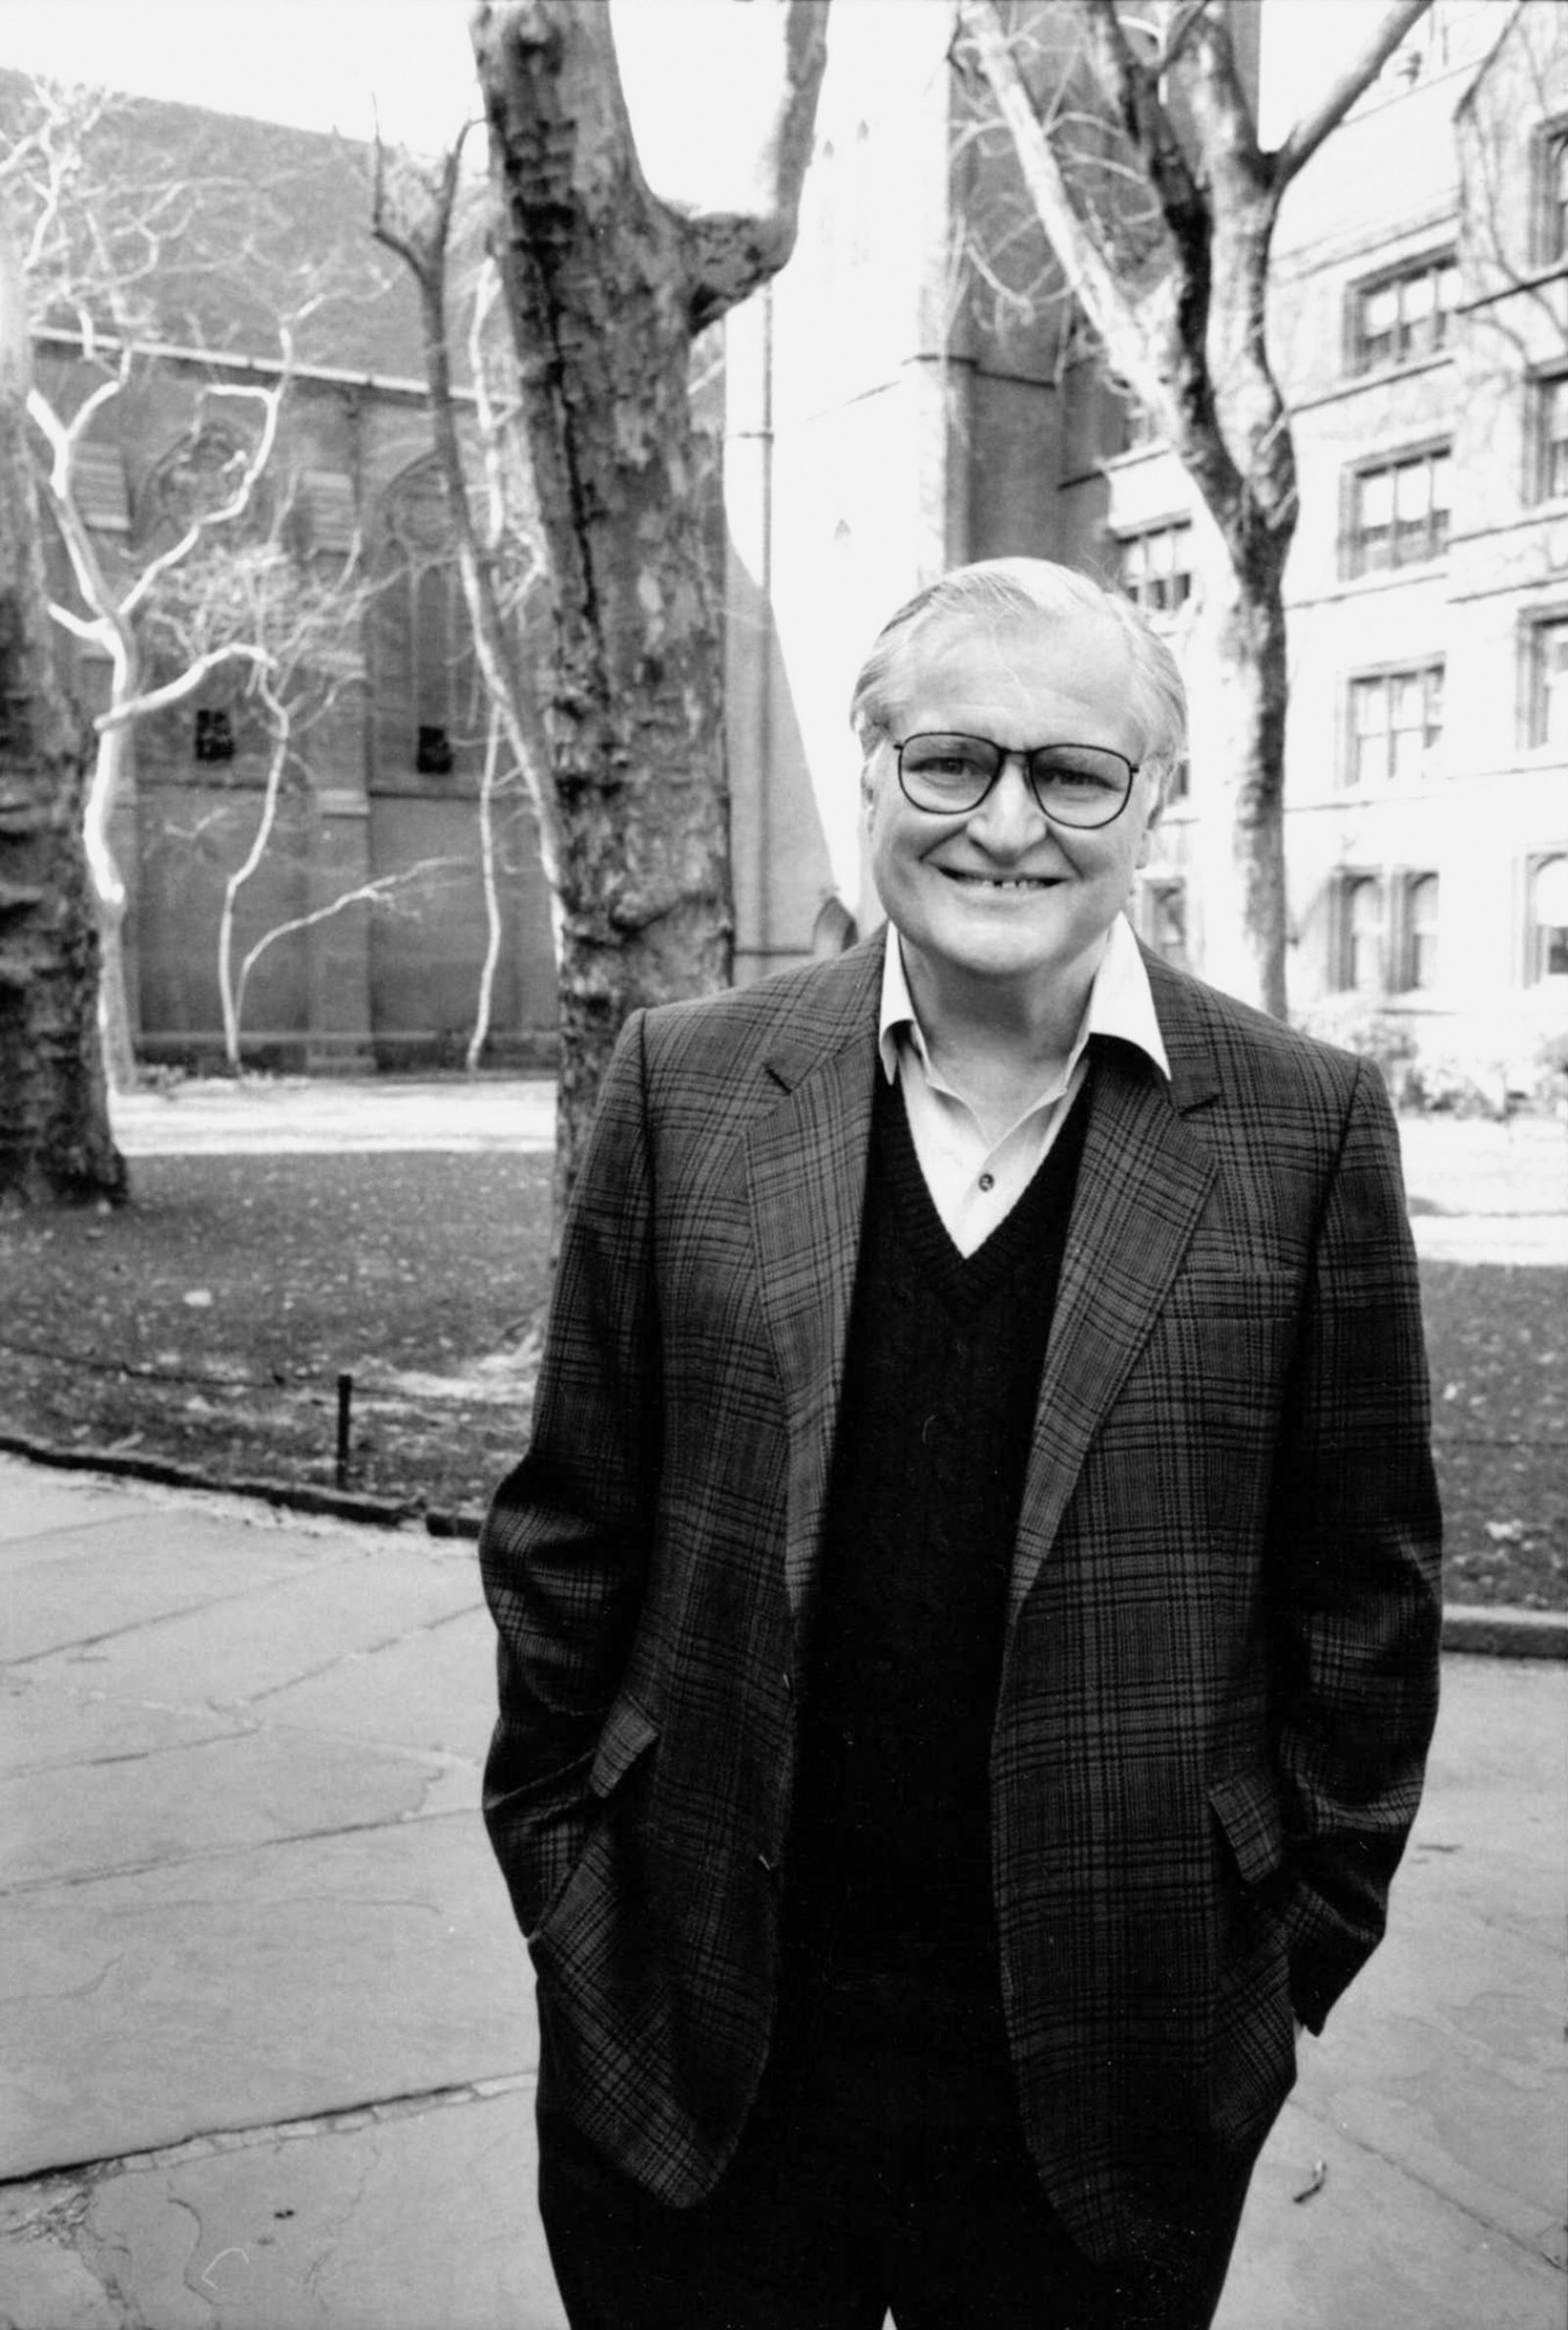 the improvement by john ashbery essay The interview was conducted at john ashbery's apartment in the section of manhattan known as chelsea when i arrived, ashbery was away, and the doorman asked me to wait outside soon the poet arrived and we went up by elevator to a spacious, well-lighted apartment in which a secretary was hard at .